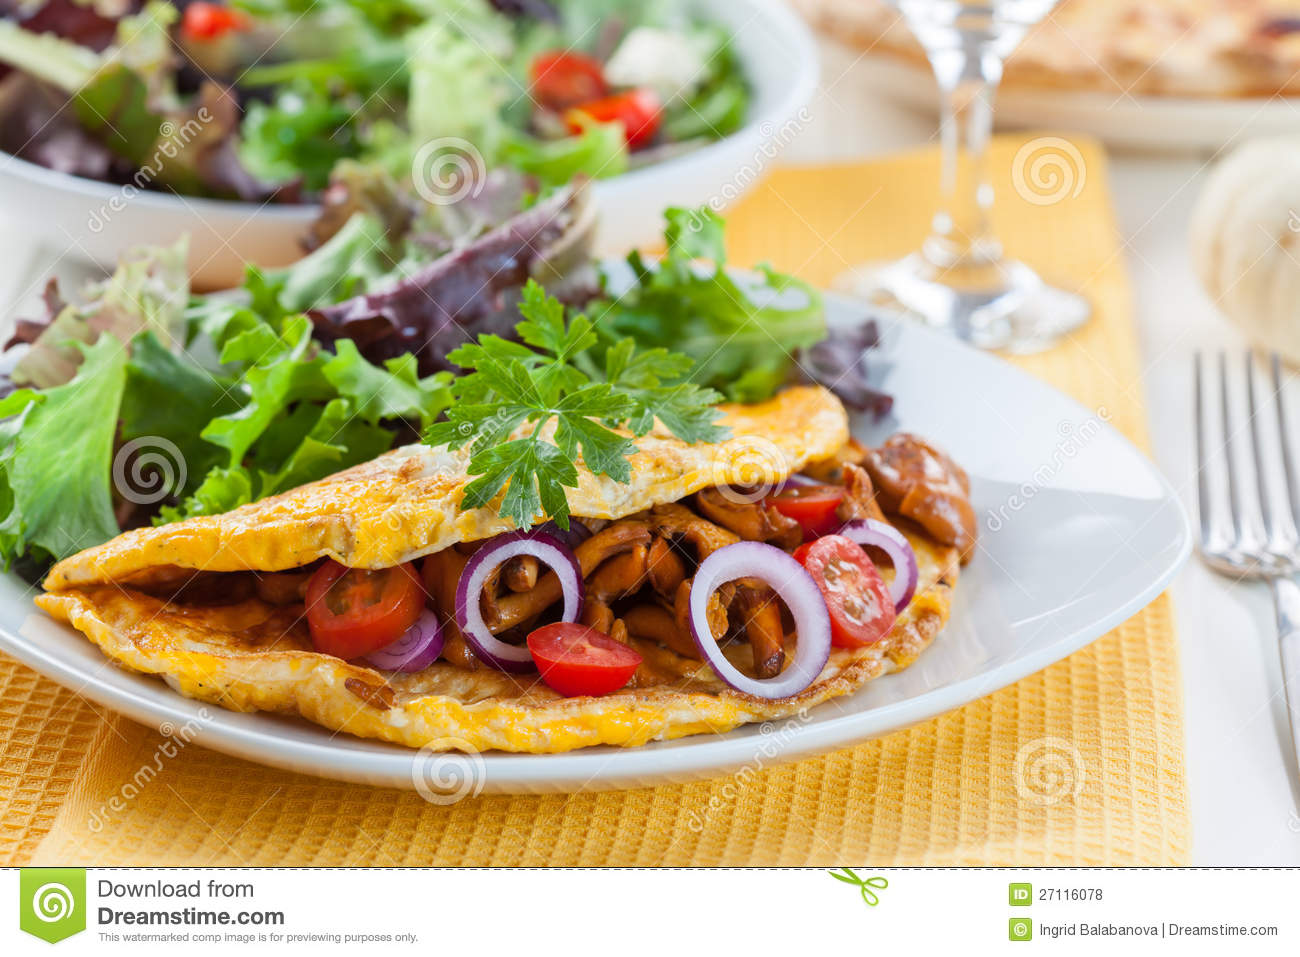 Omelet filled with chanterelle mushrooms